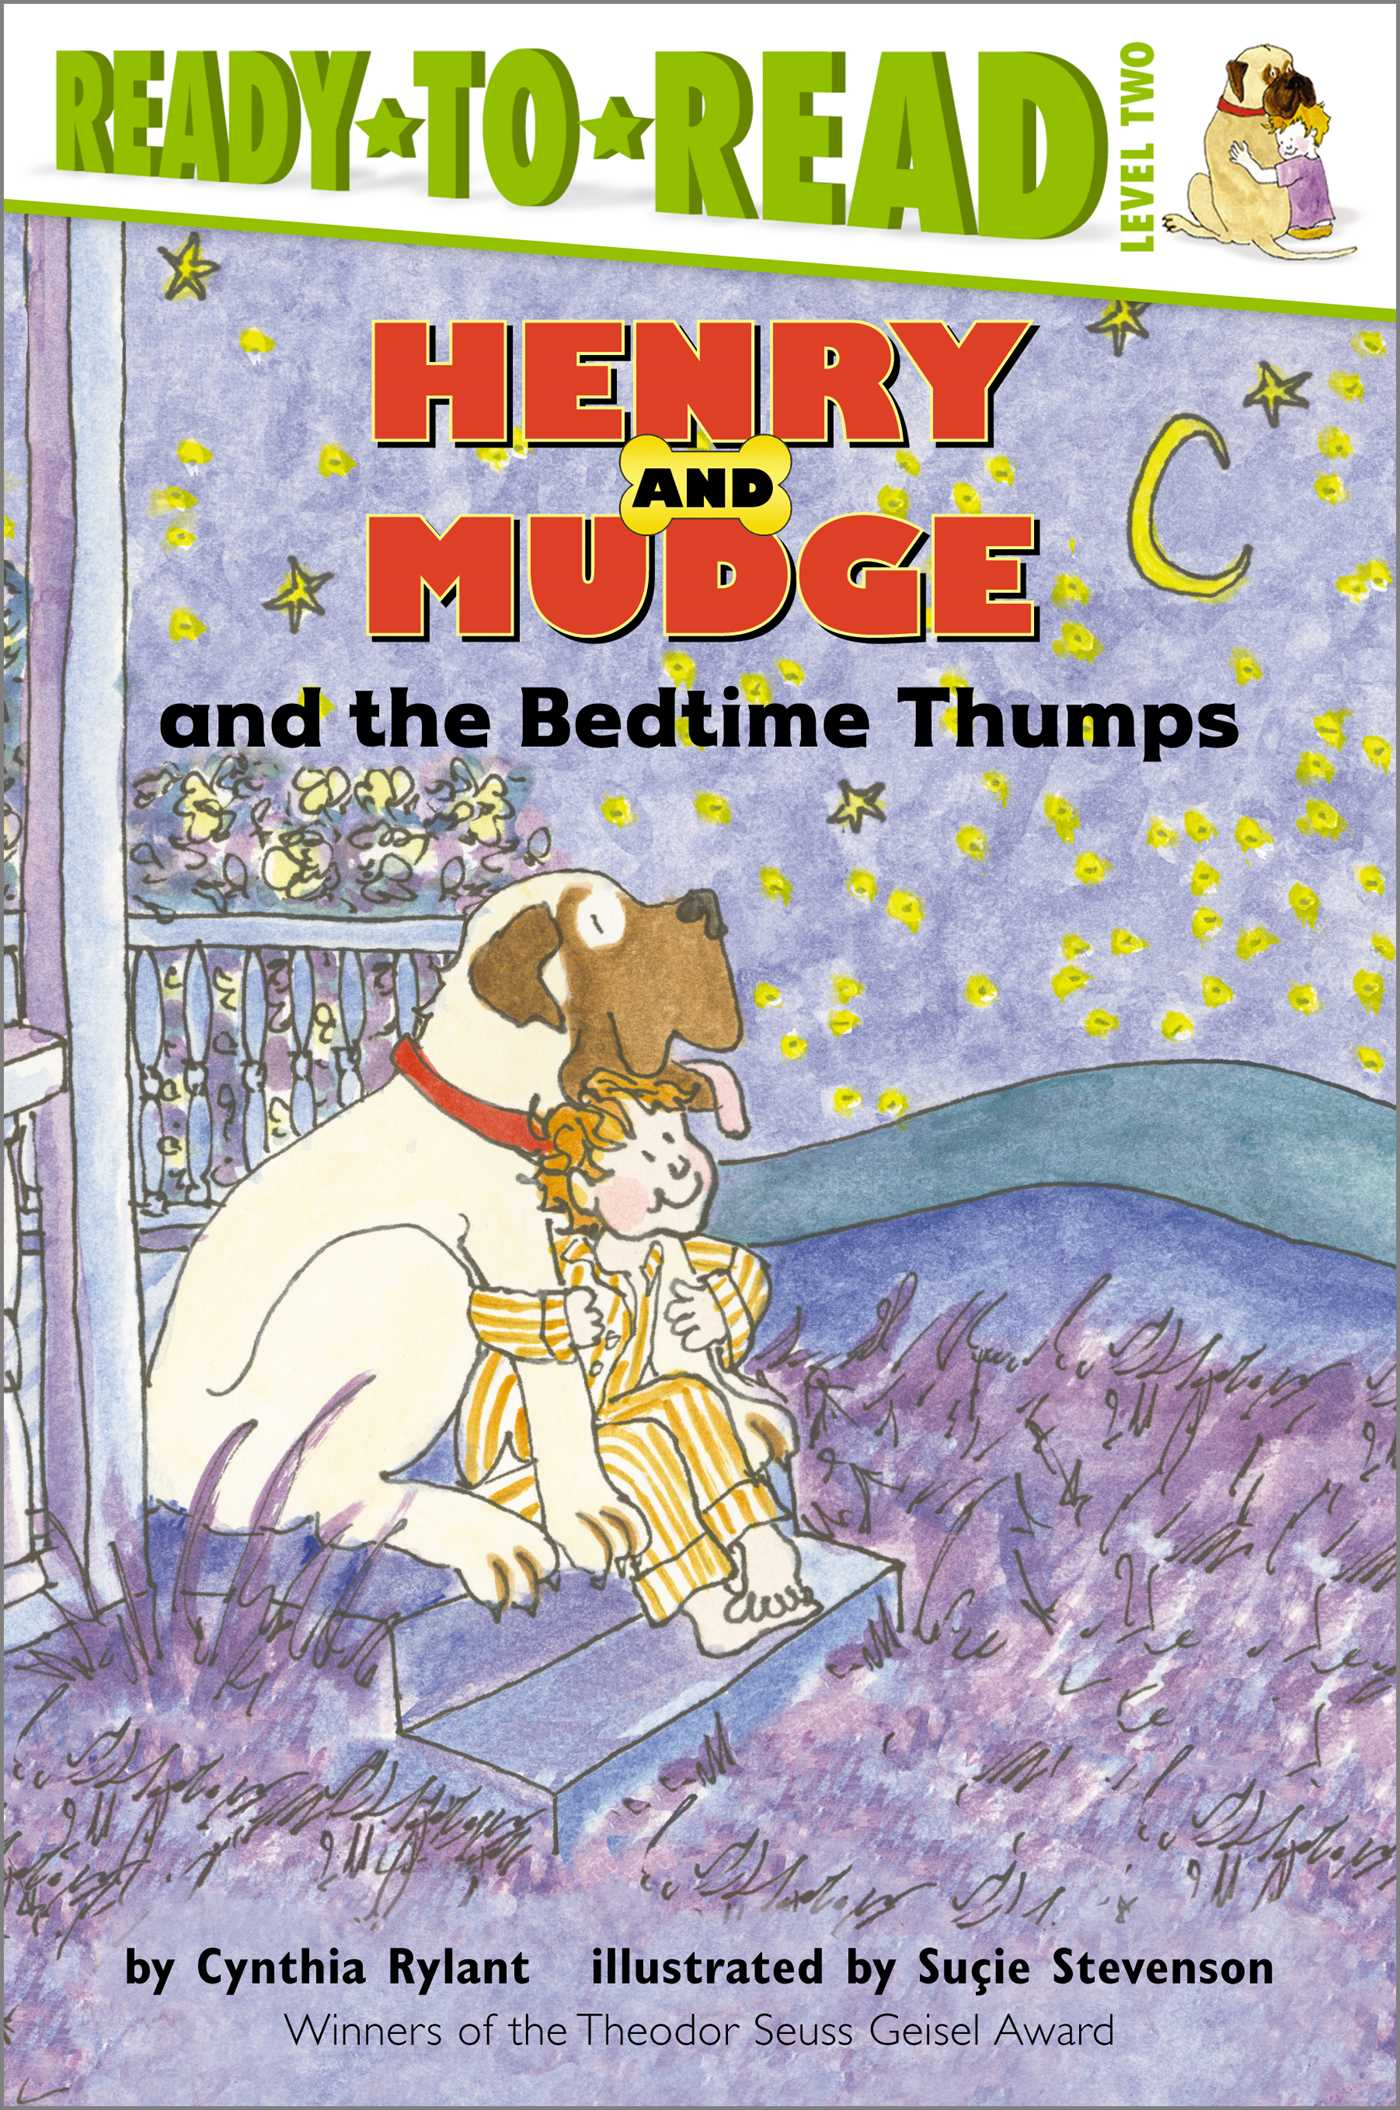 Henry and mudge and the bedtime thumps 9781442441170 hr